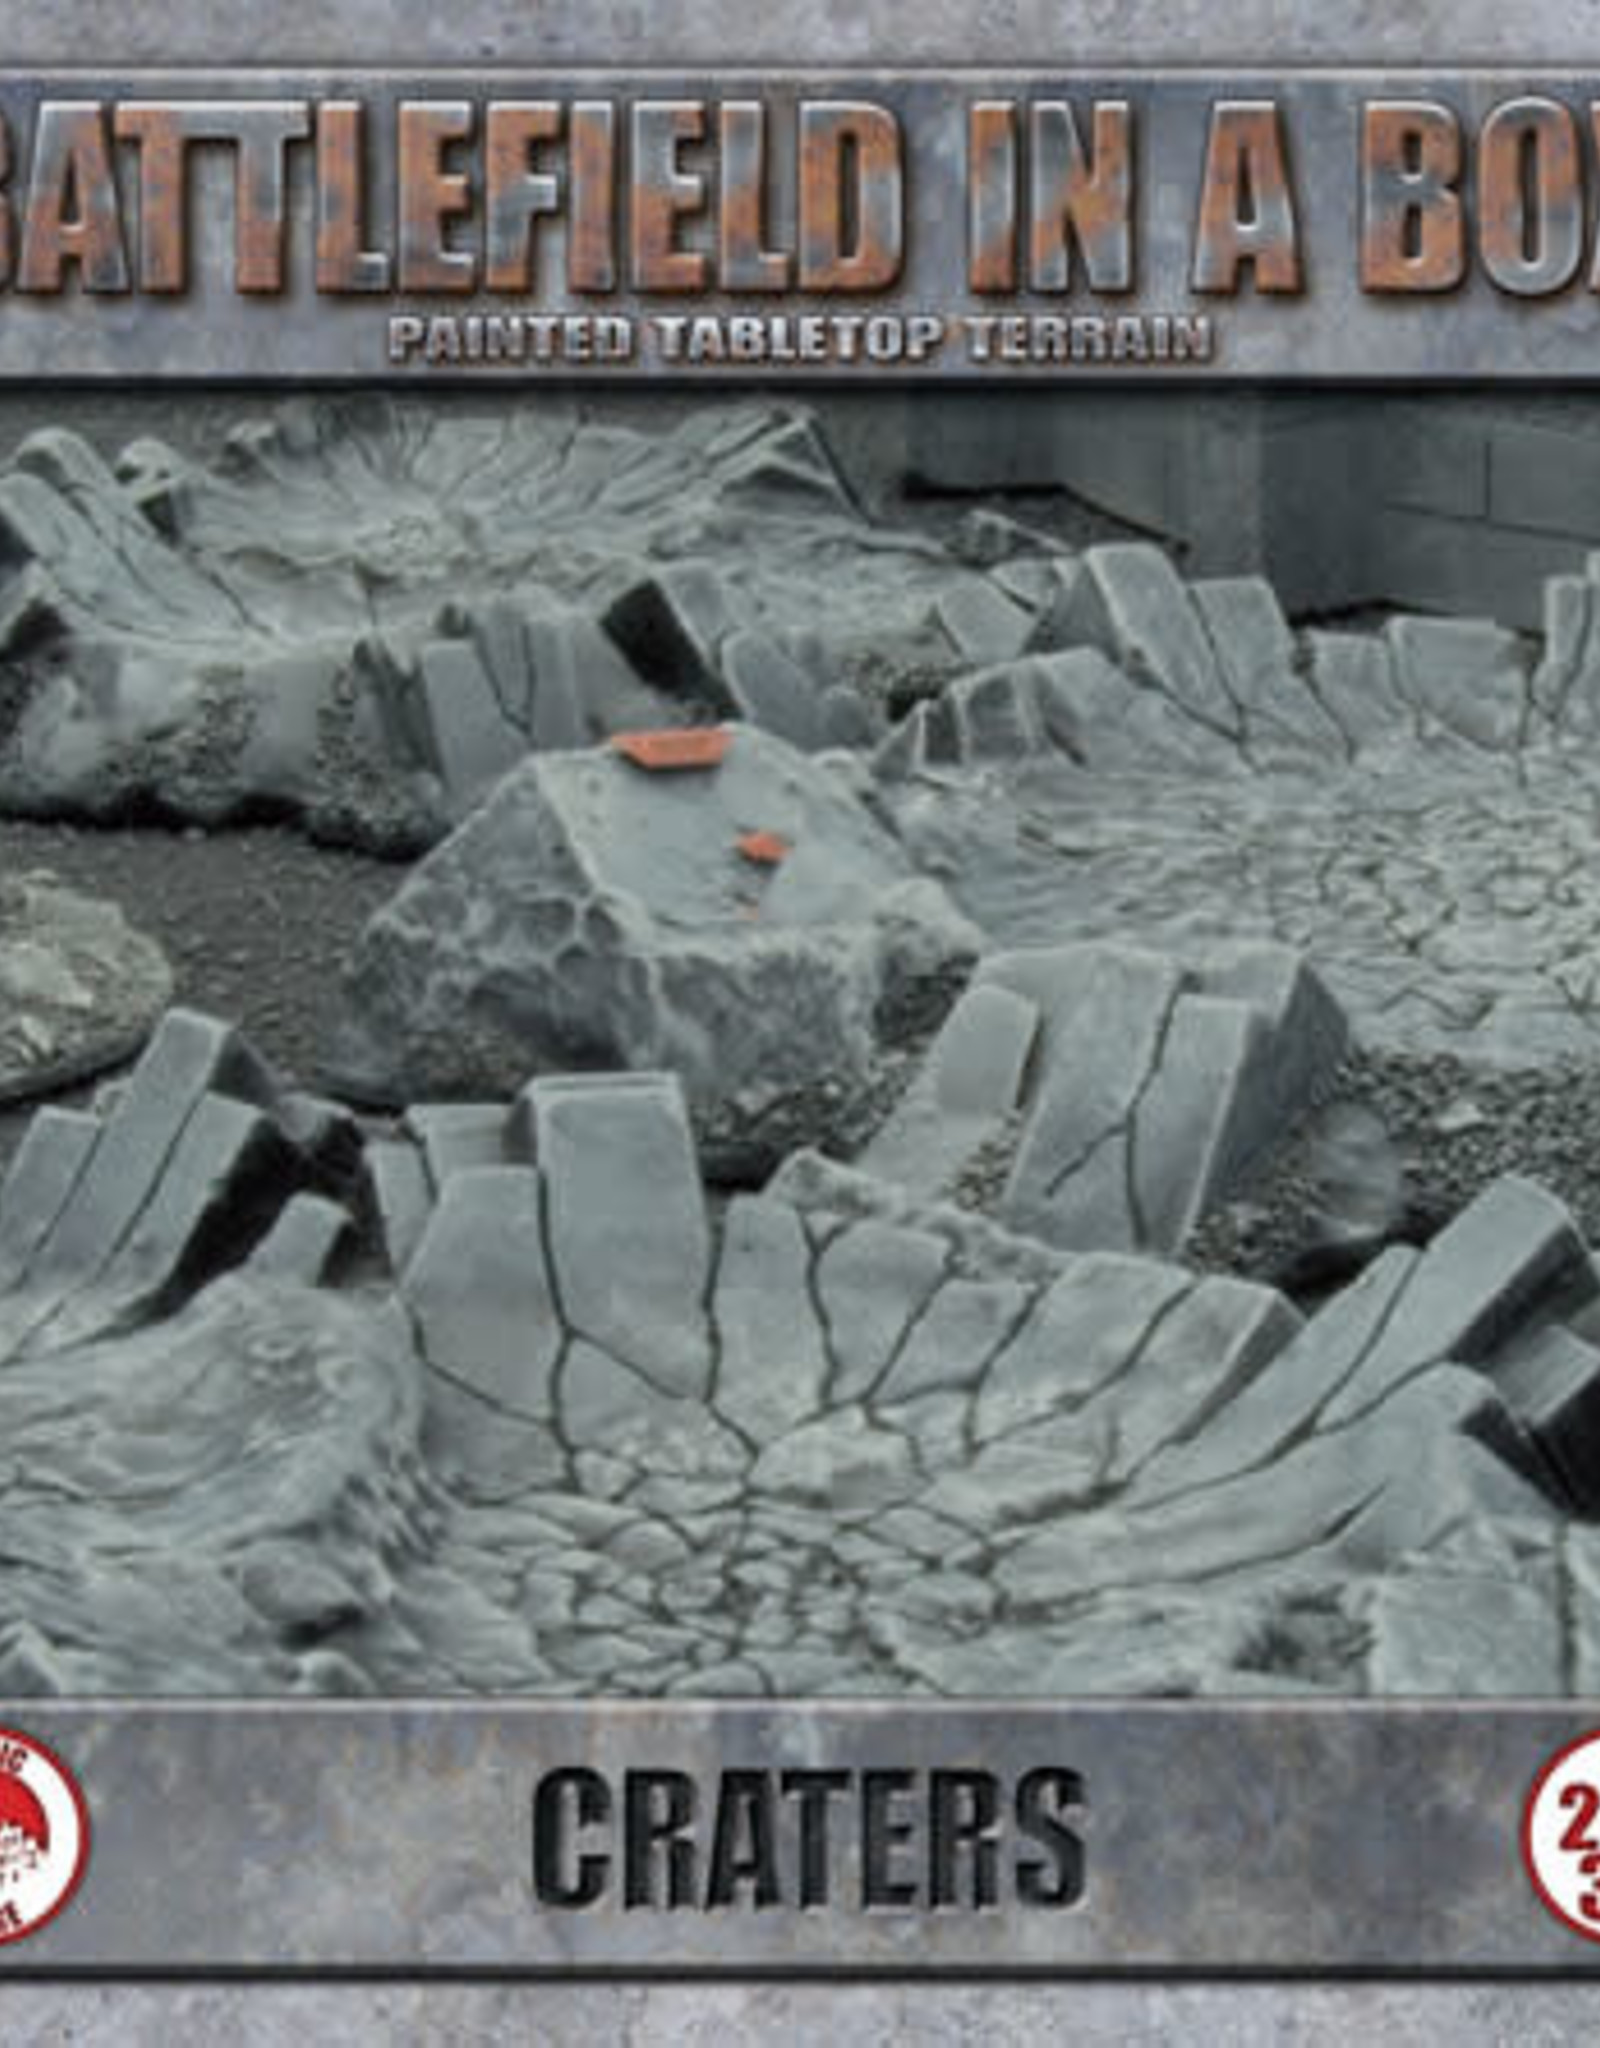 Gale Force Nine Gothic: Craters